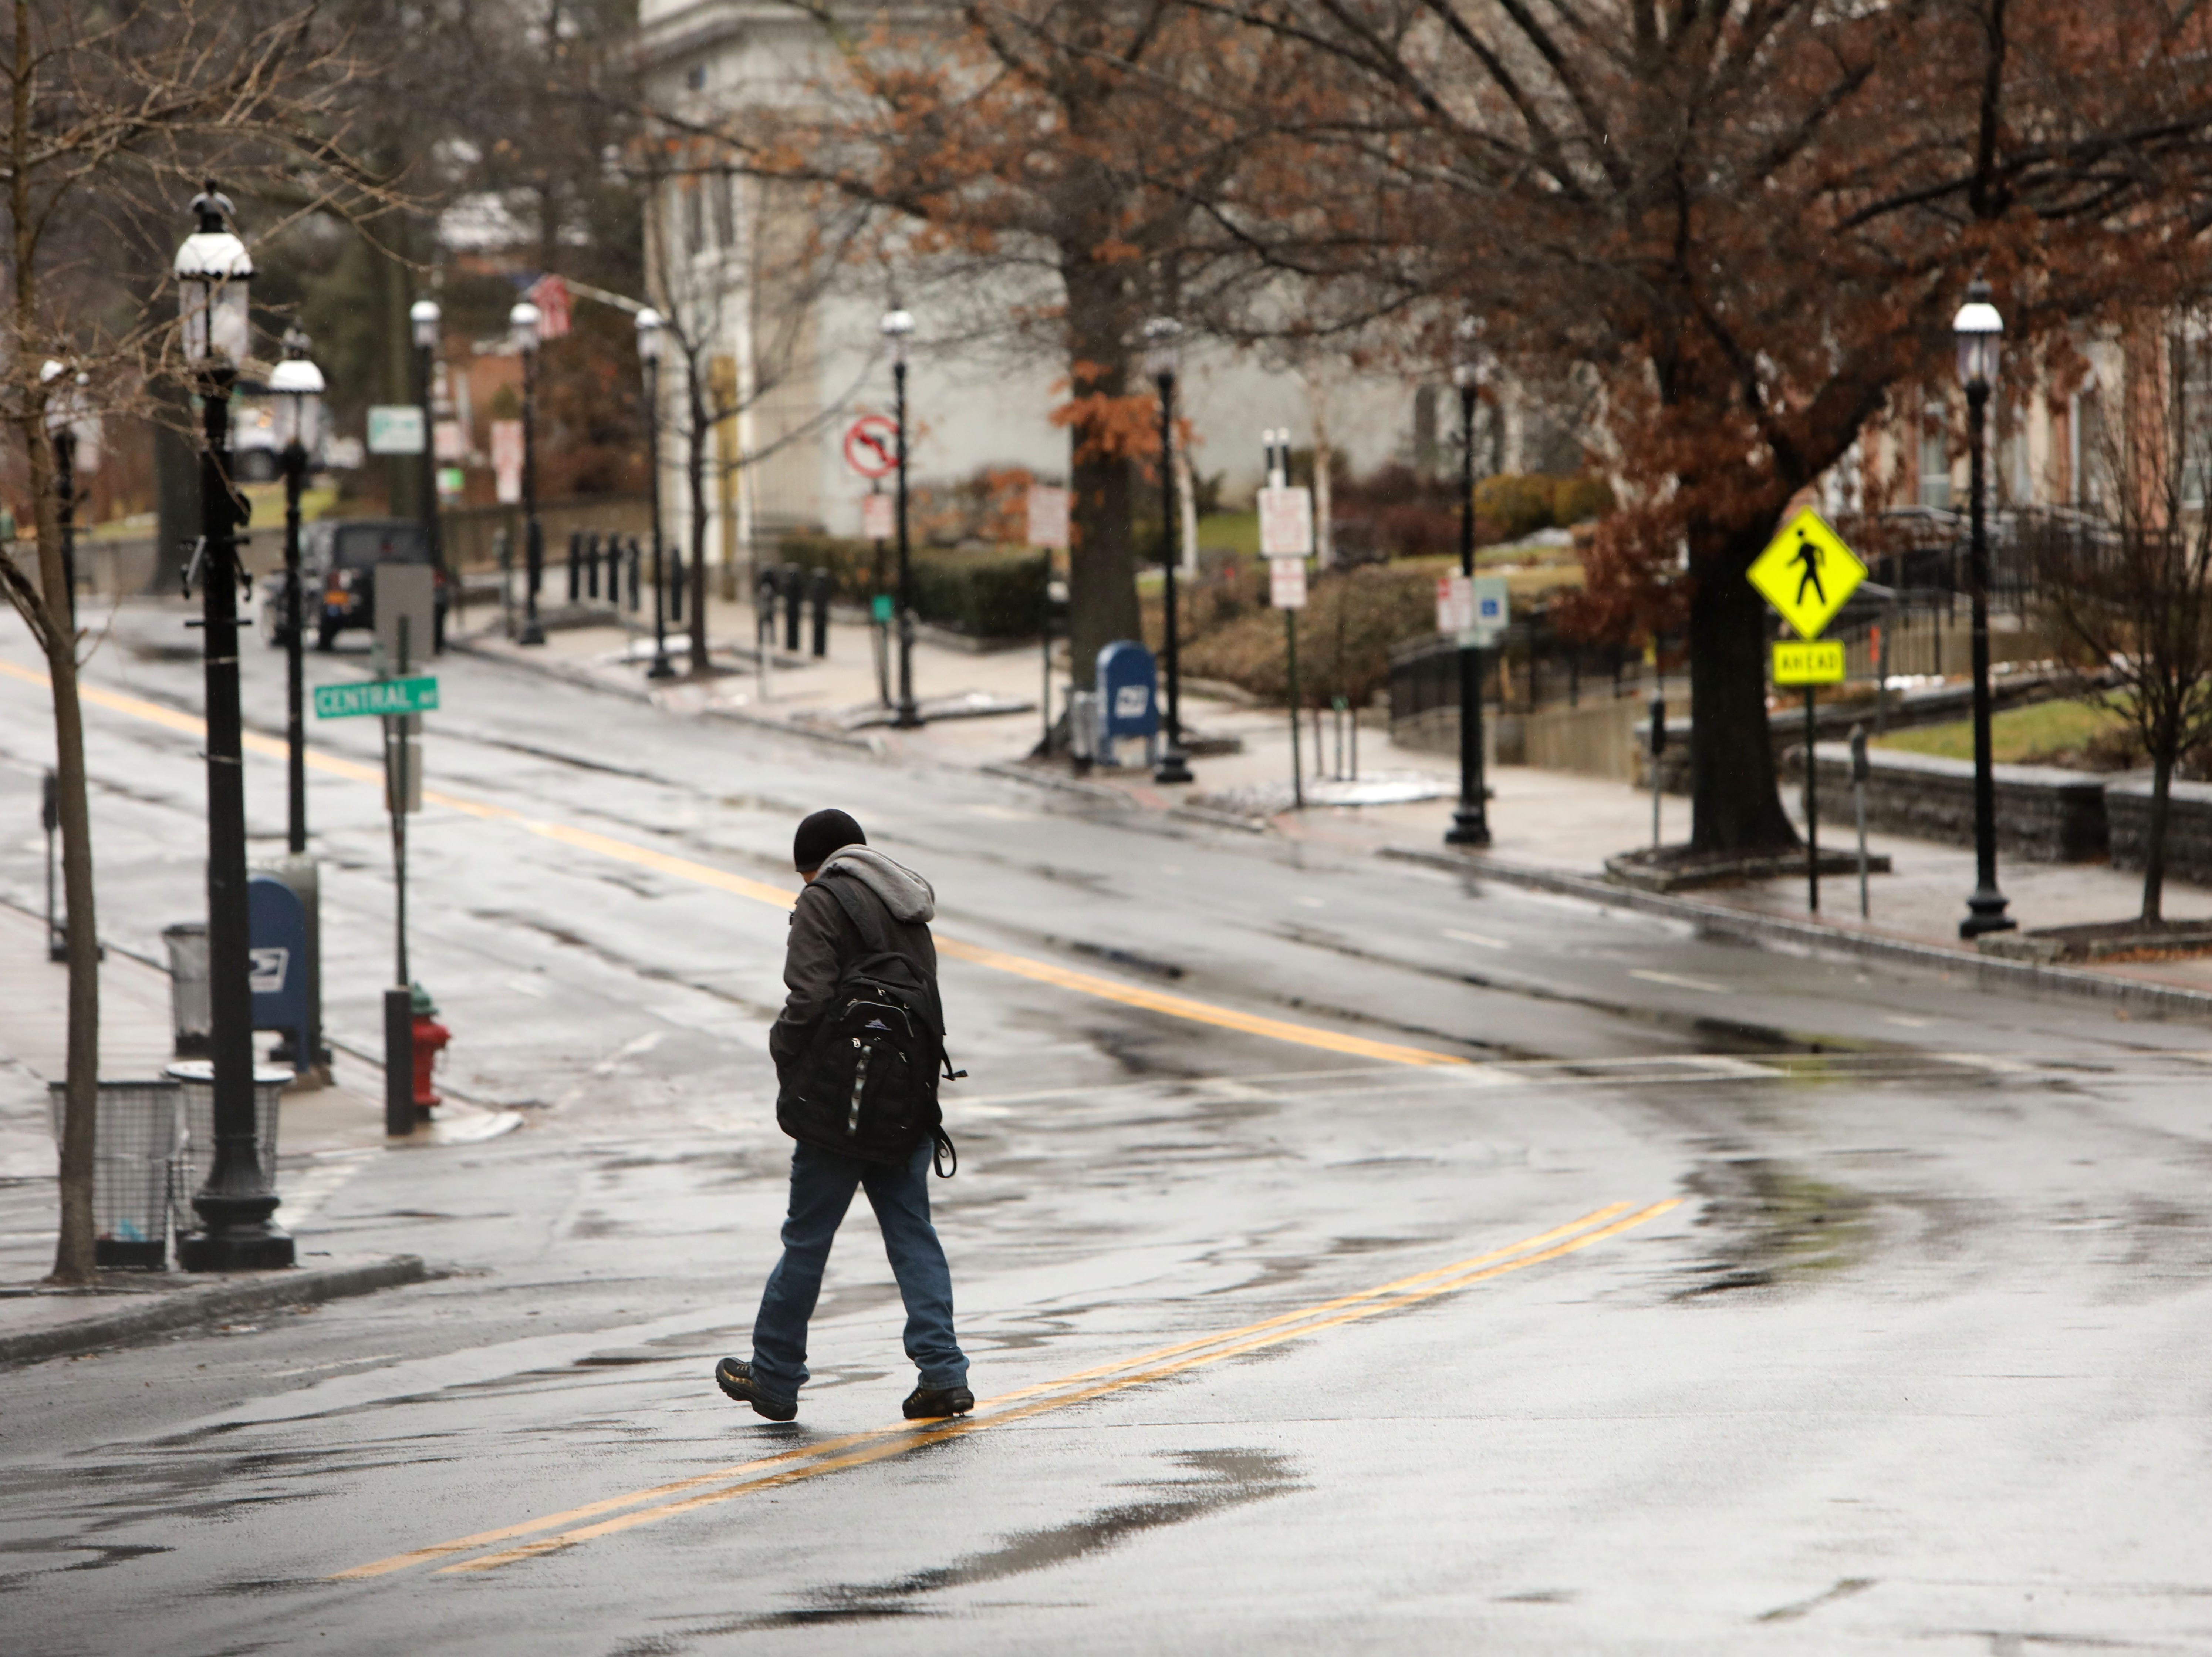 A man crosses Broadway on a quiet rainy morning Jan. 20, 2019 in Tarrytown.  Snow turned to sleet or heavy rain overnight and will continue throughout the day. Colder temperatures are expected later in the day which will cause a flash freeze throughout the region.